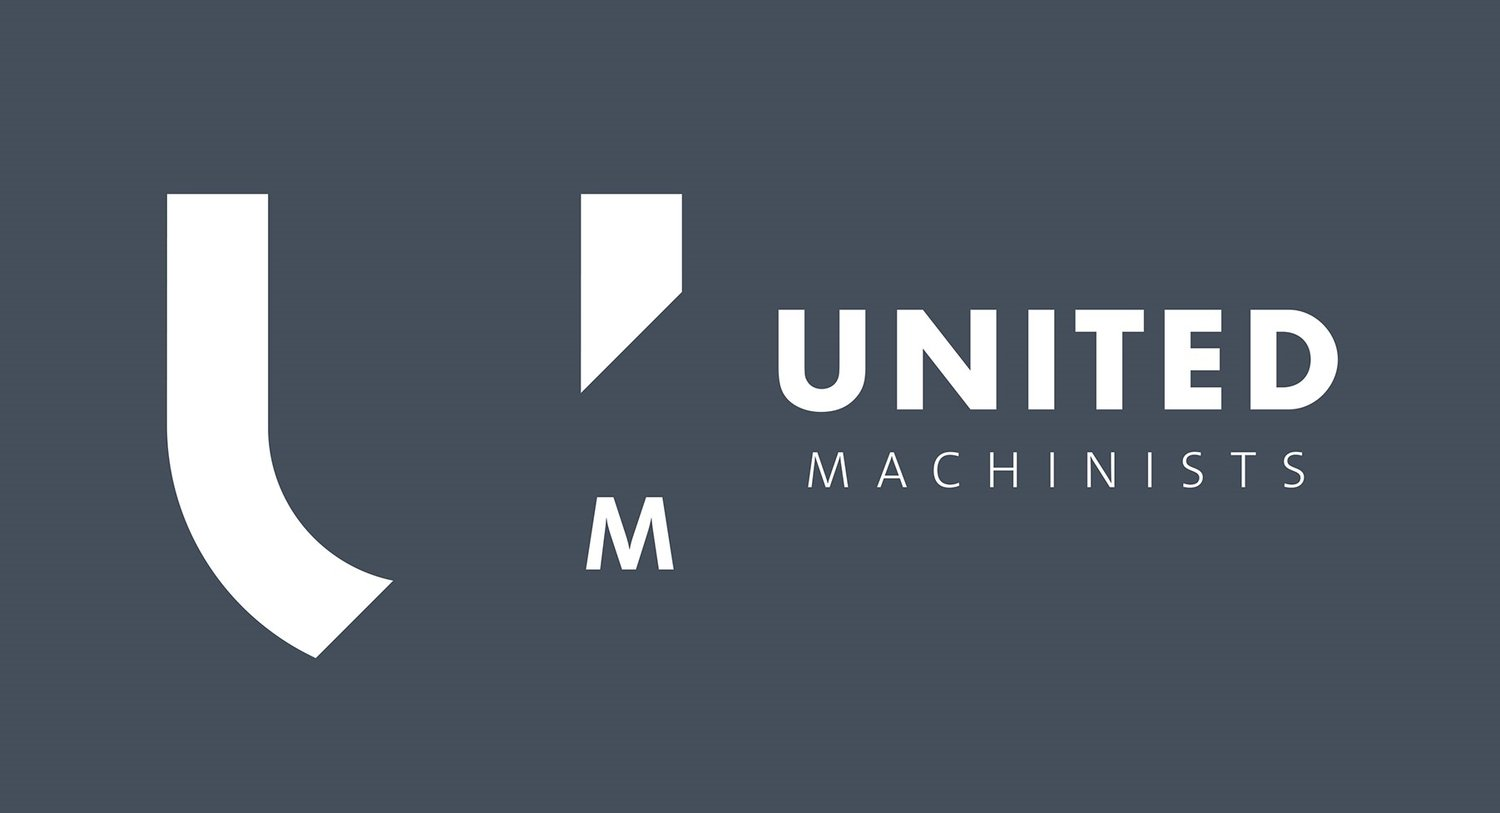 UNITED MACHINISTS